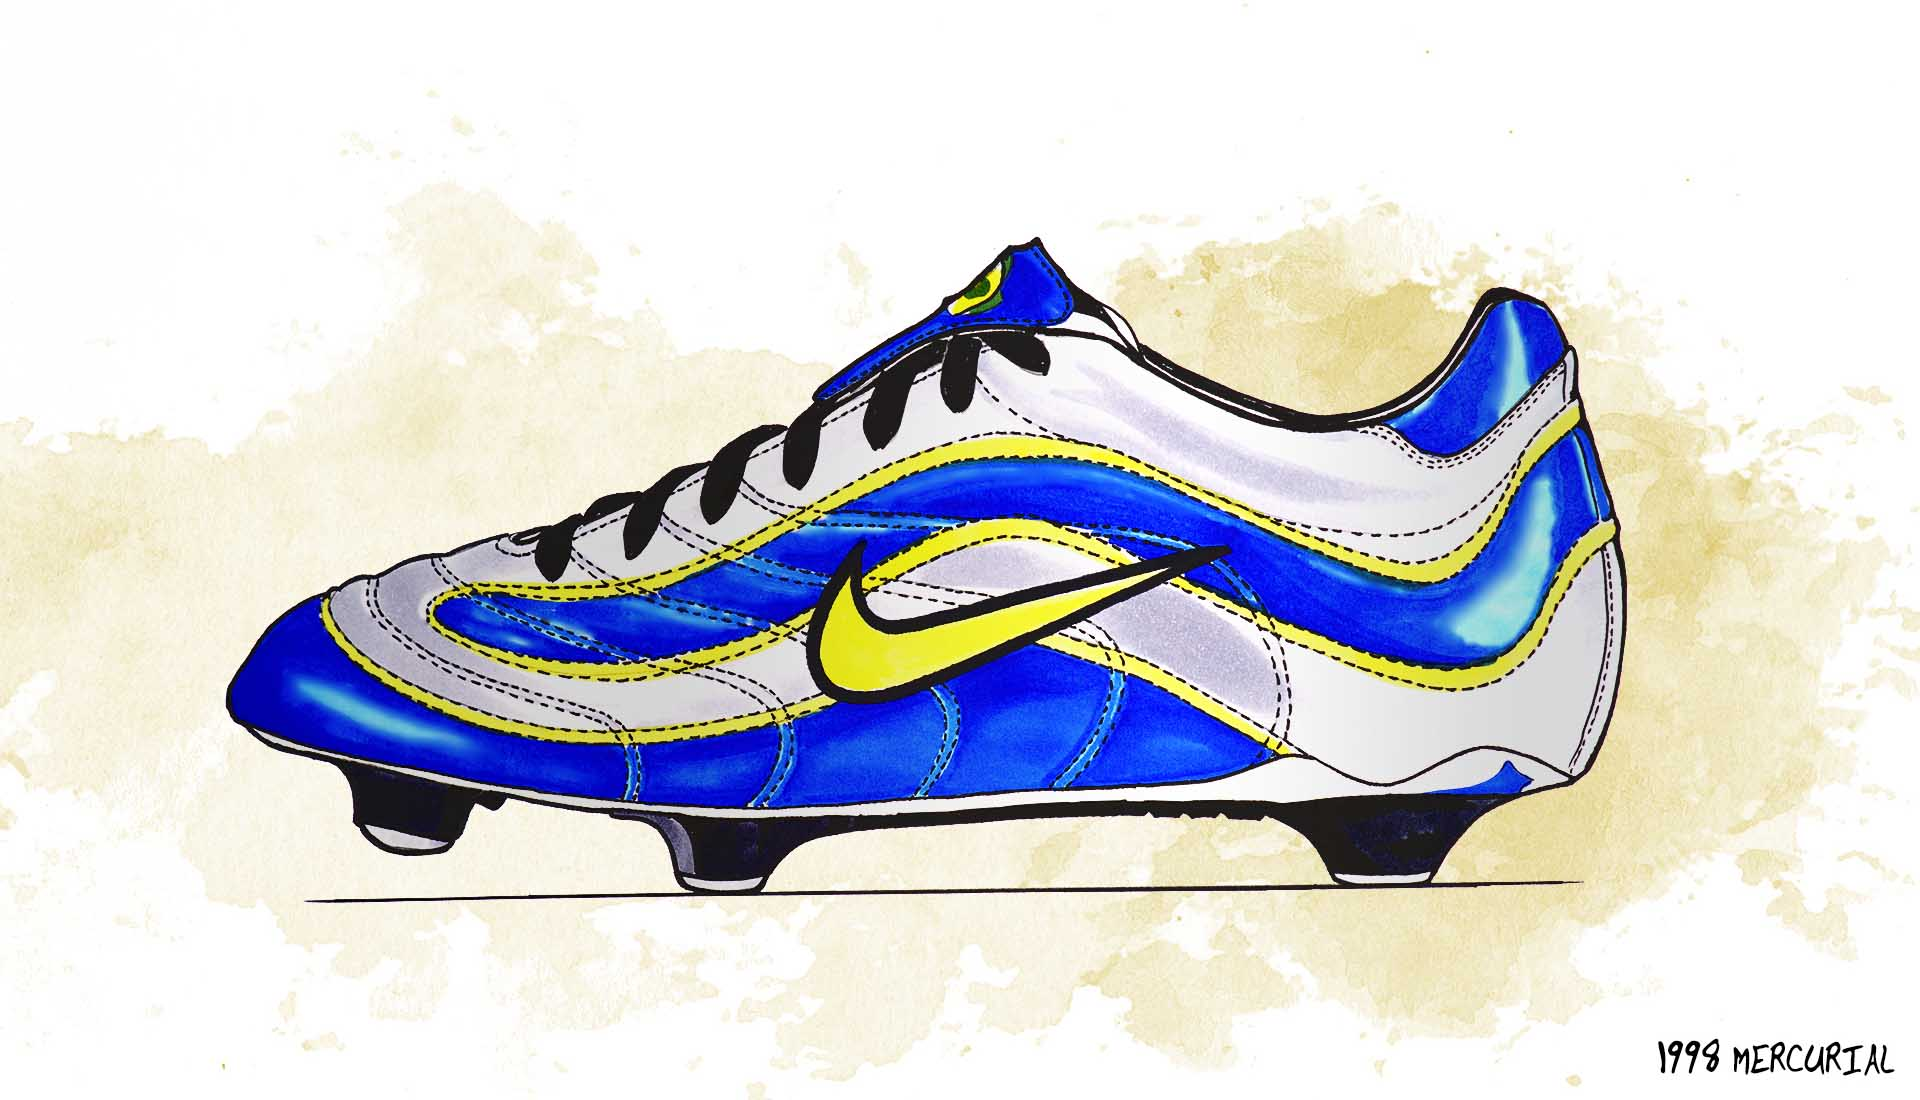 1-nike-mercurial-timeline-illustrations.jpg